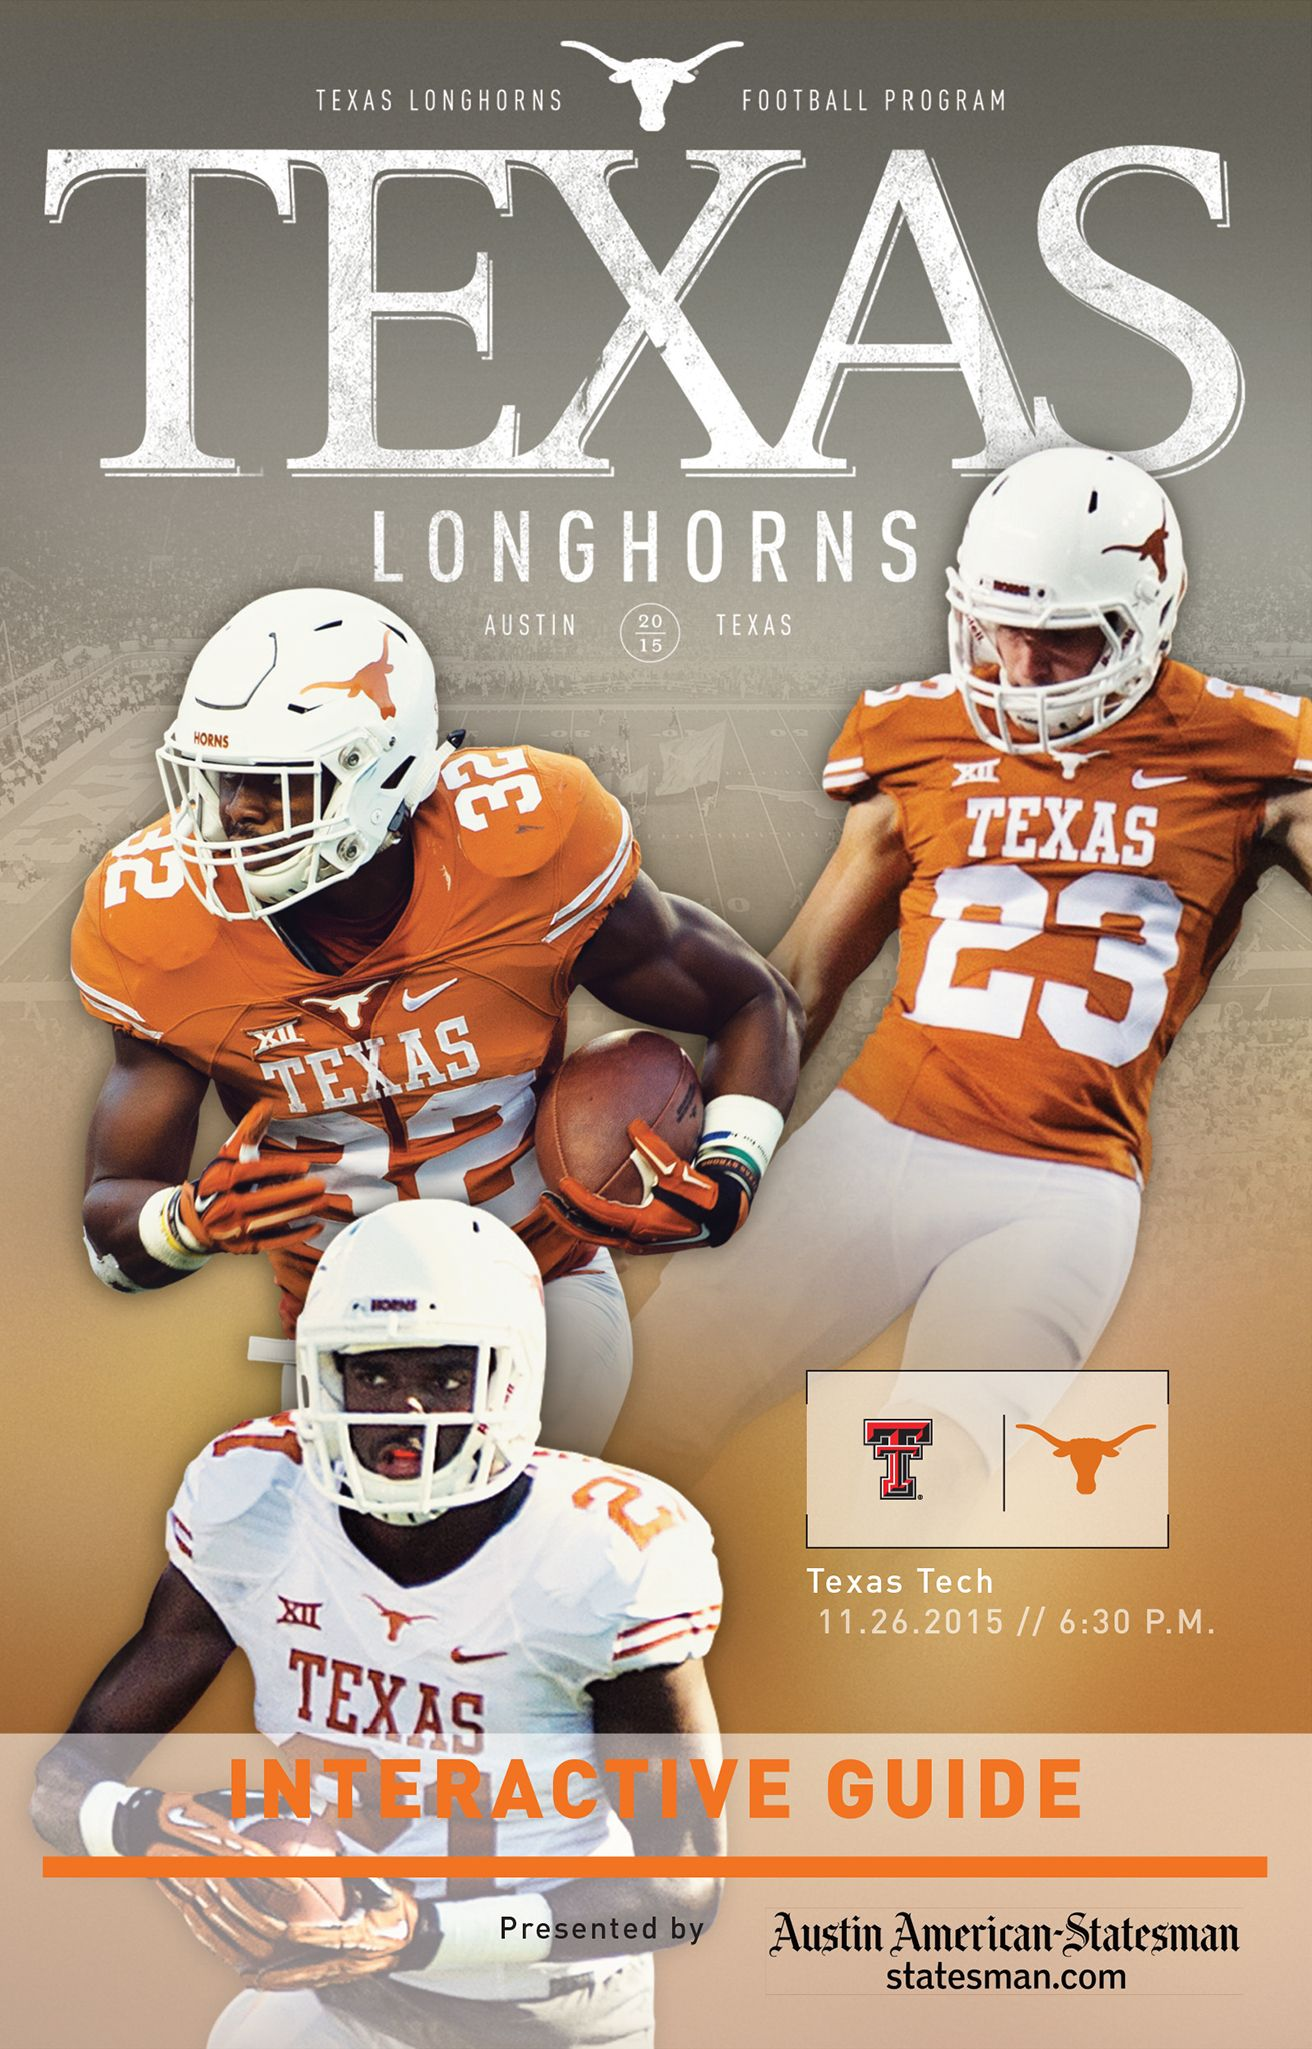 Texas vs. Texas Tech [Nov. 26, 2015 featuring RB Johanthan